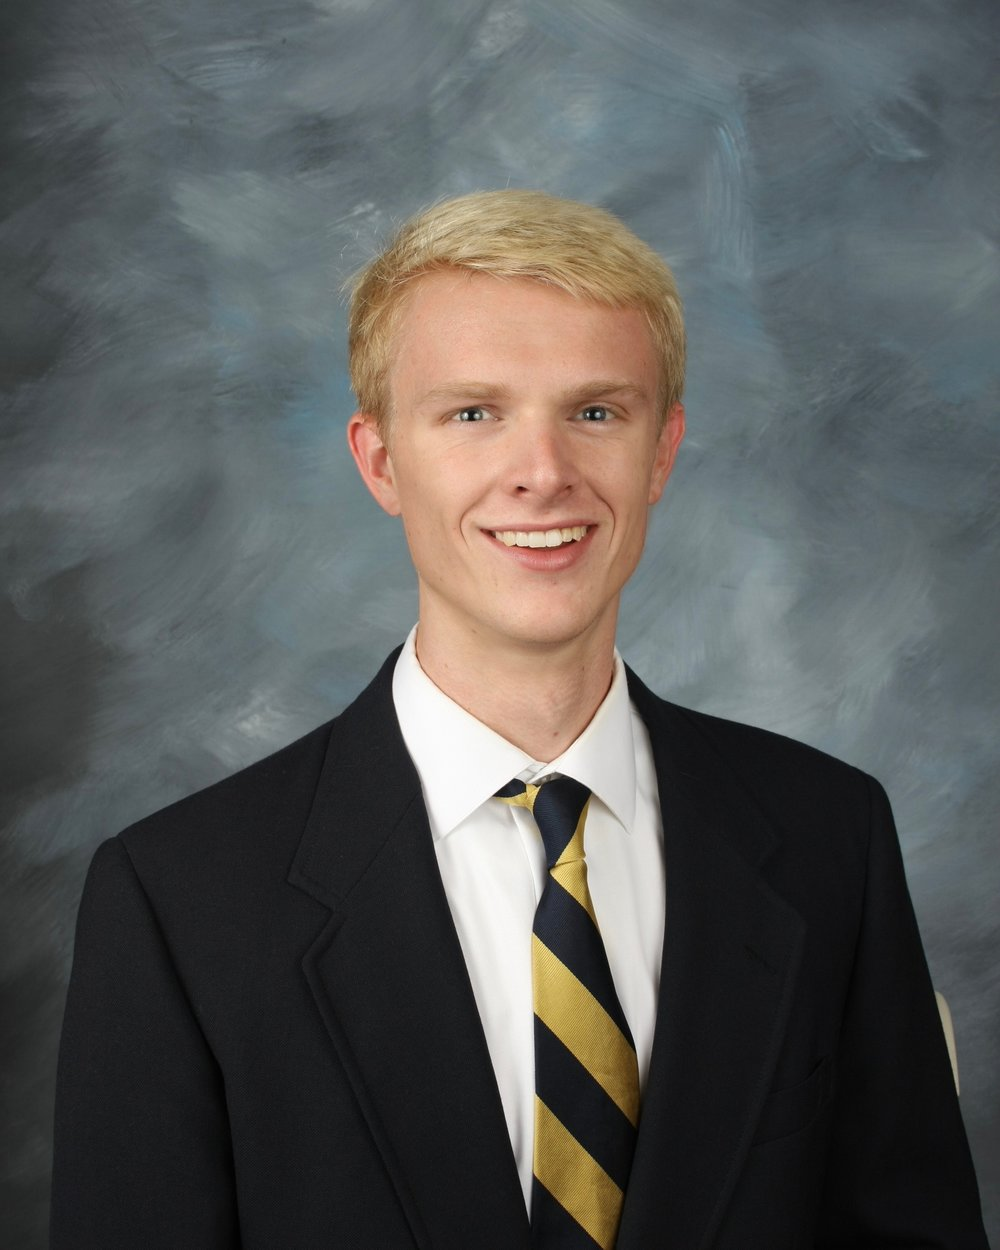 morgan jacobus vice president beta alpha theta xi fraternity